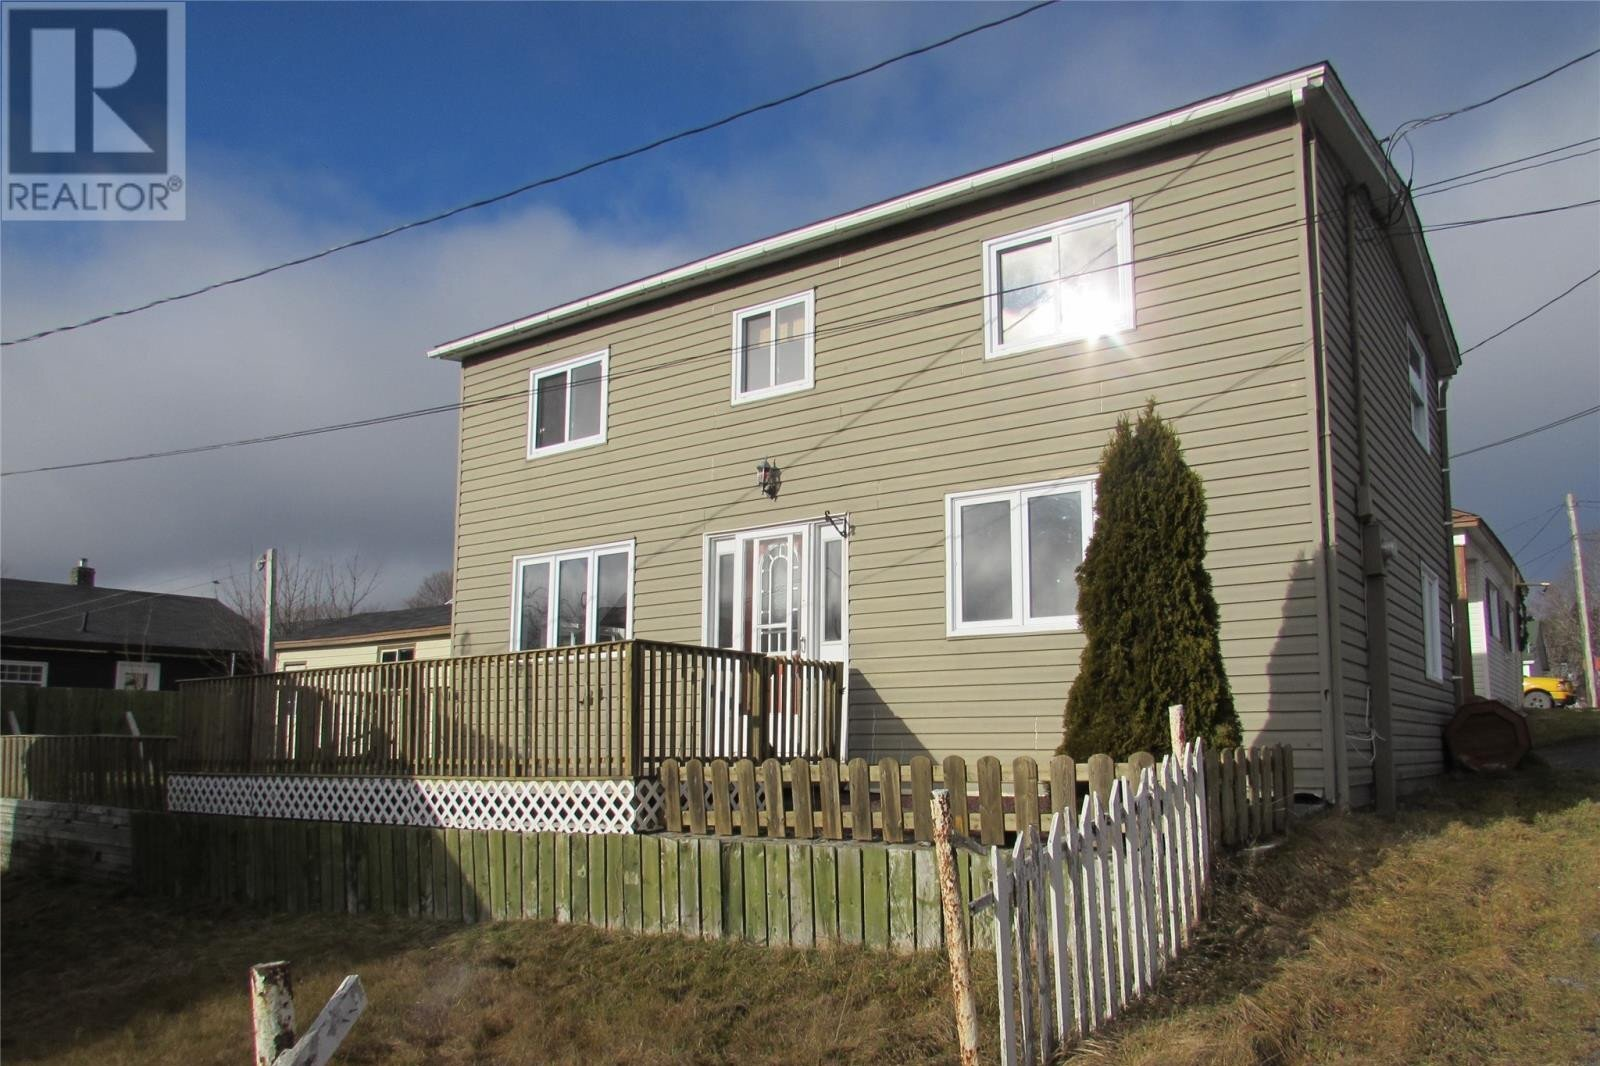 House for sale at 5 Quarters Ln Carbonear Newfoundland - MLS: 1224580